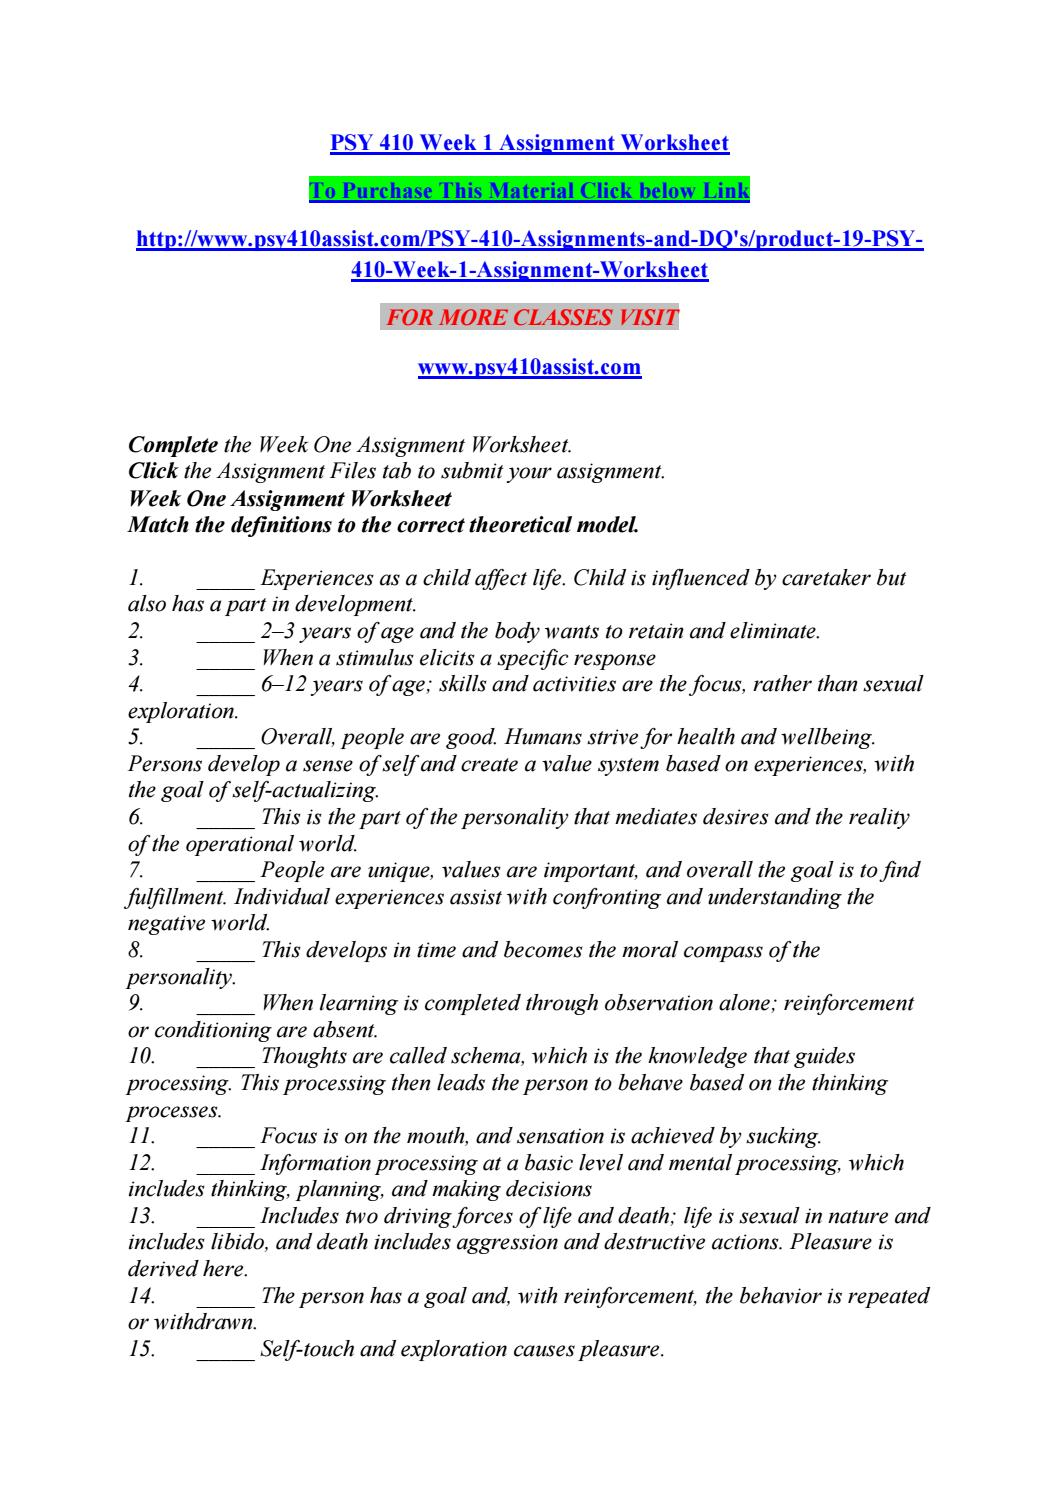 psy 410 week 3 individual assignment Psy 410 week 1 assignment worksheet psy 410 week 5 individual programmatic assessment for more course tutorials visit.